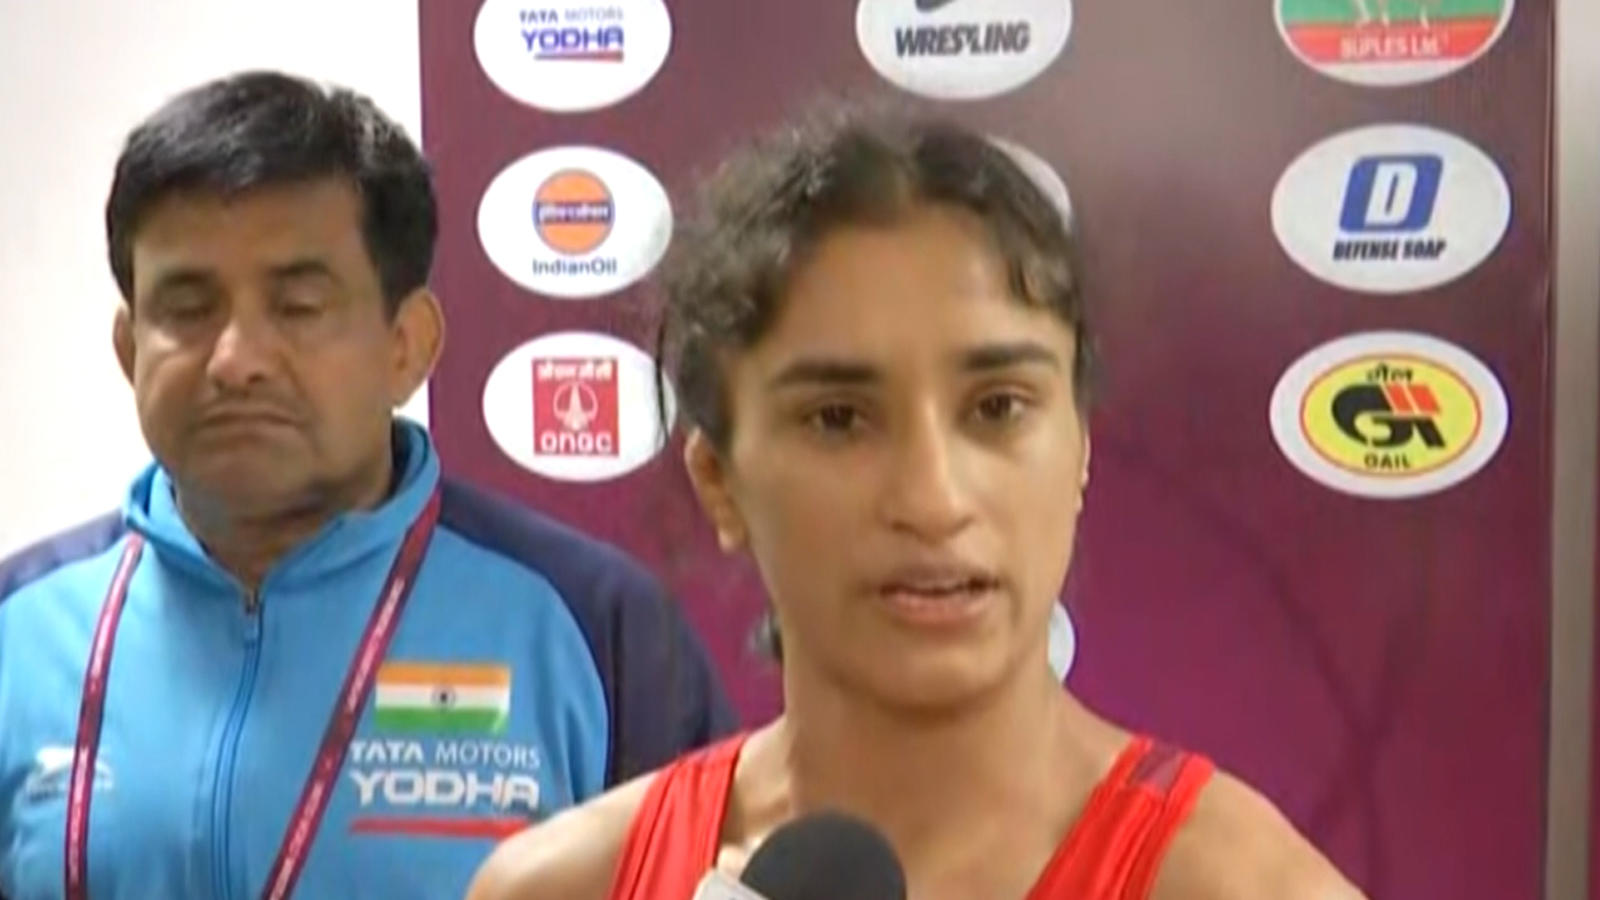 asian-championships-vinesh-phogat-speaks-up-after-quarter-final-loss-against-japanese-rival-mayu-mukaida